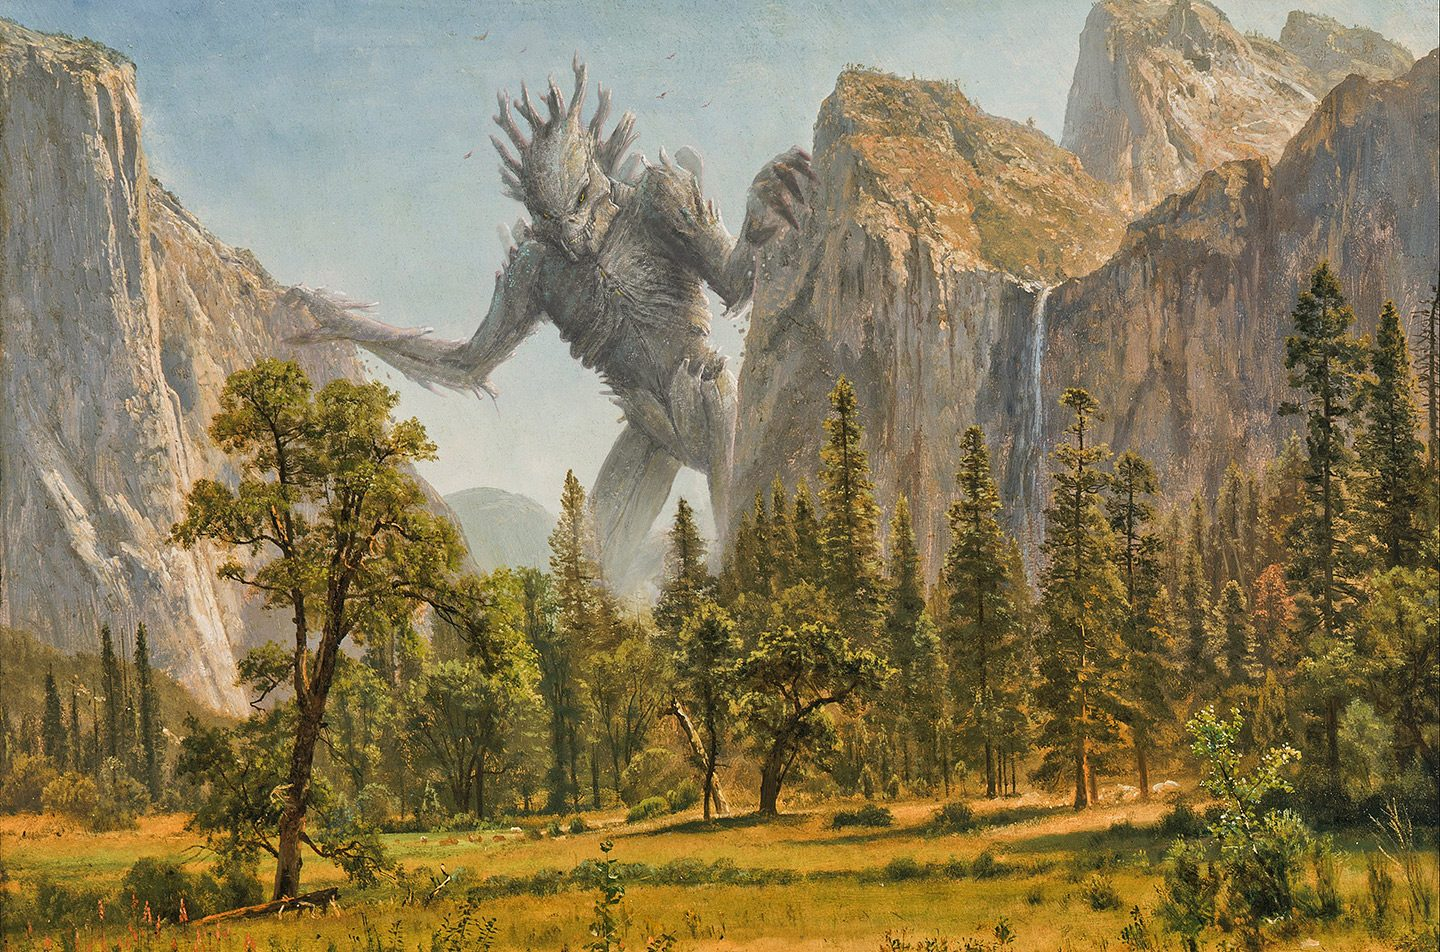 Fantasio-and-Albert_Bierstadt_-_Bridal_Veil_Falls,_Yosemite_Valley,_California_-_Kaiju_Arthistory-Project-small